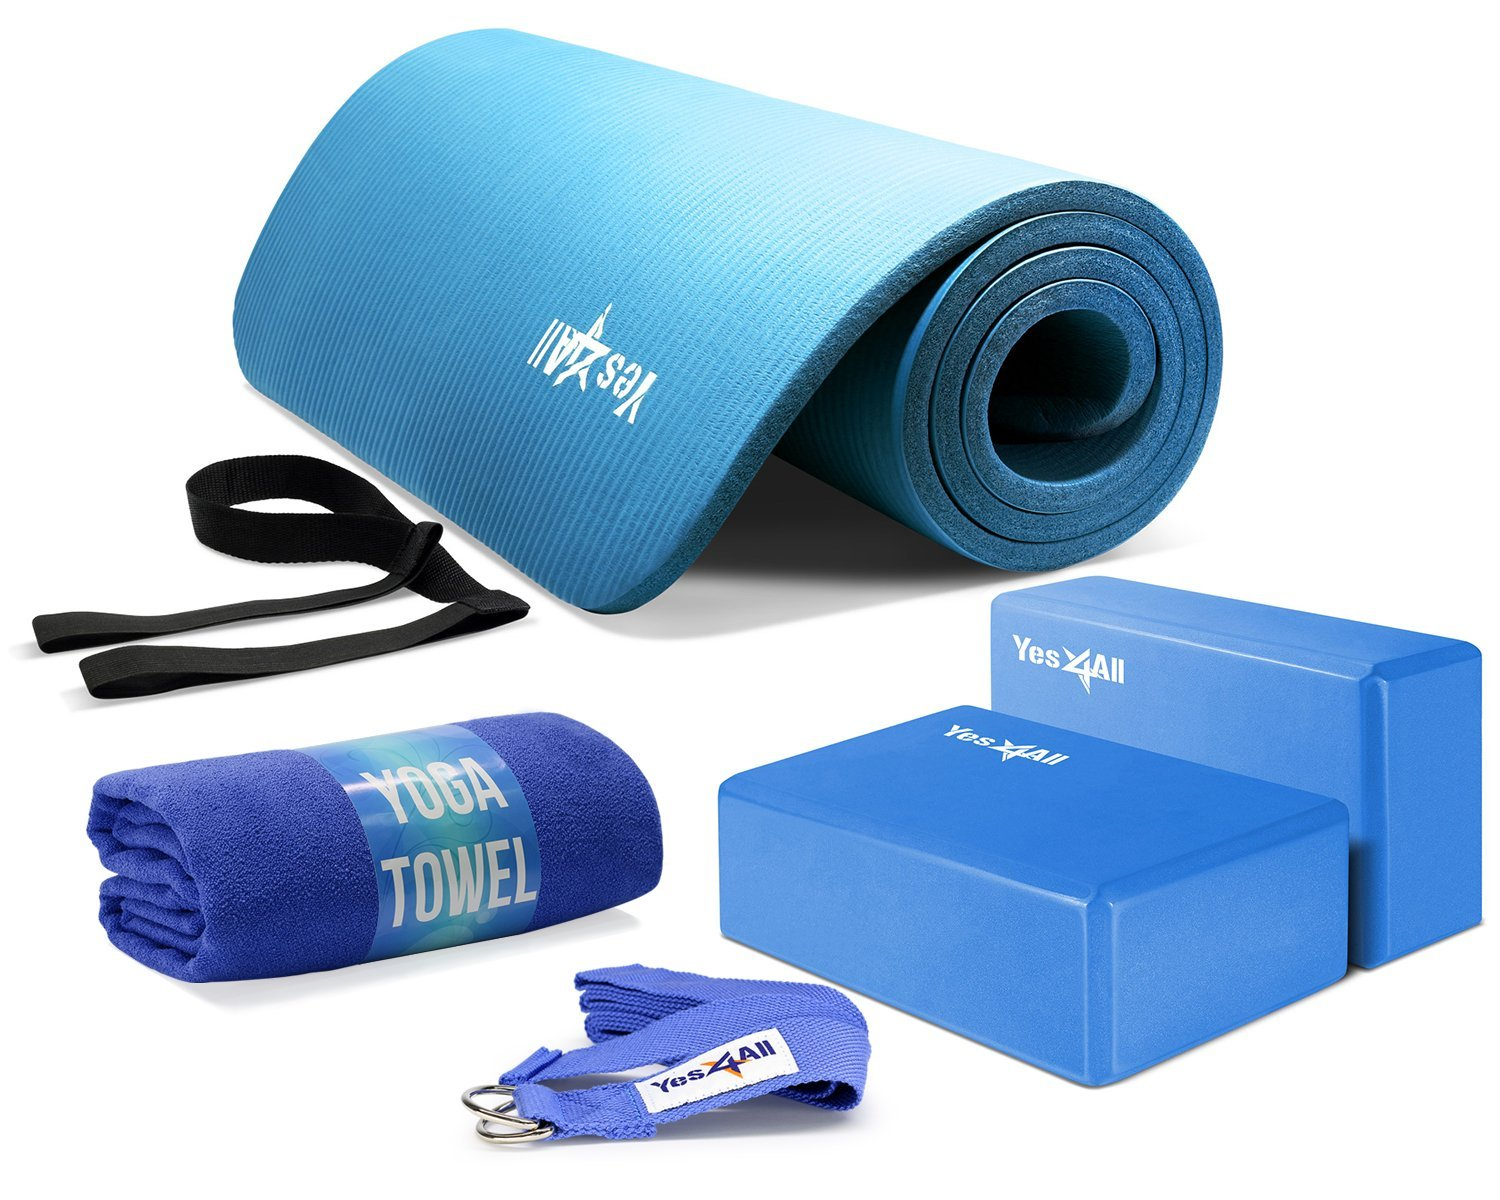 Yes4All Beginner Yoga Set – Variety of Kit Options, Full Set Includes Mat, Blocks, Carrying Strap, Yoga Strap and Towel, 3 Color Choices